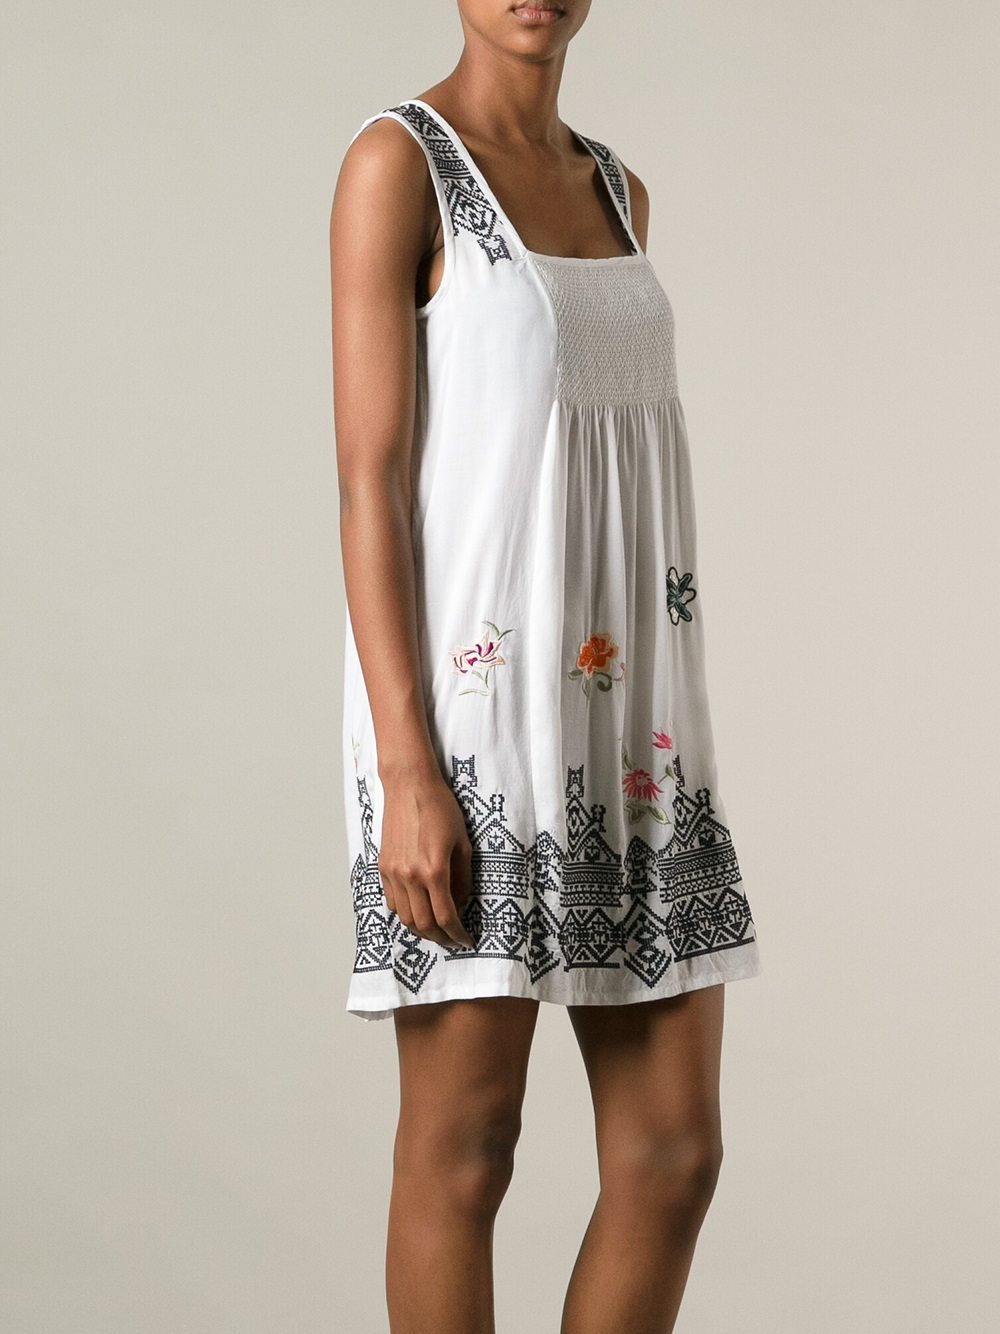 Lyst Odd Molly Myway Sleeveless Dress In White